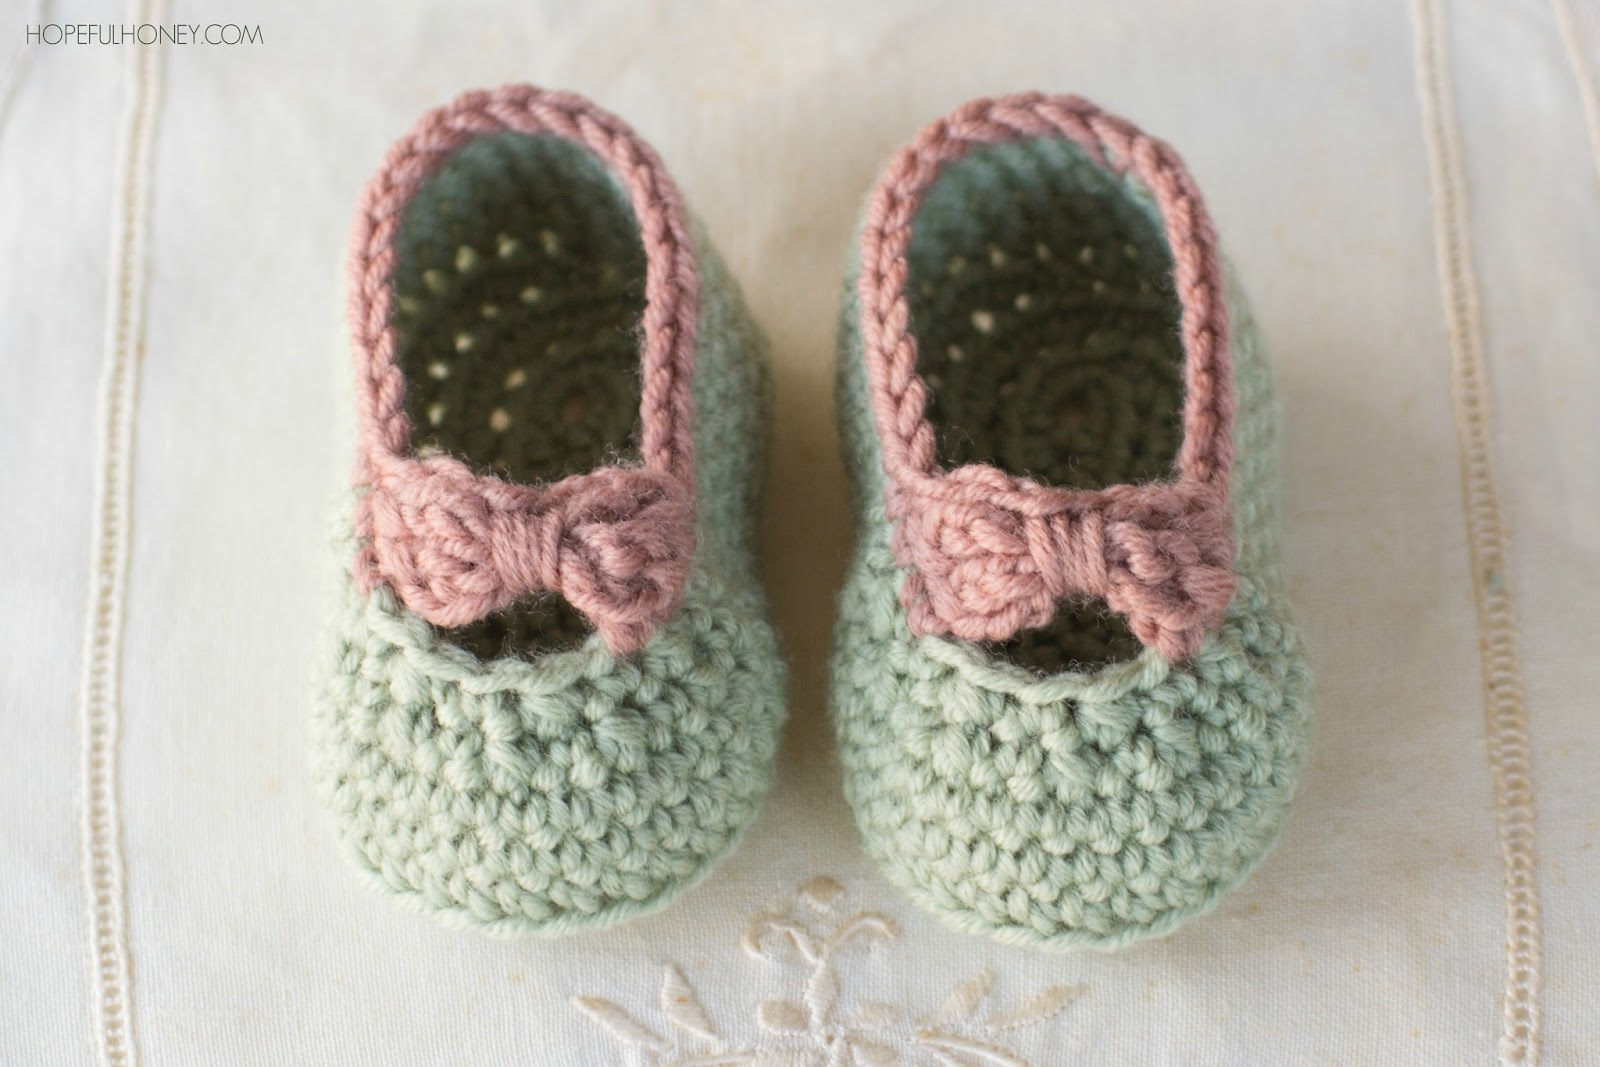 Crochet Baby Booties Pattern For Free : Hopeful Honey Craft, Crochet, Create: Little Lady Baby ...